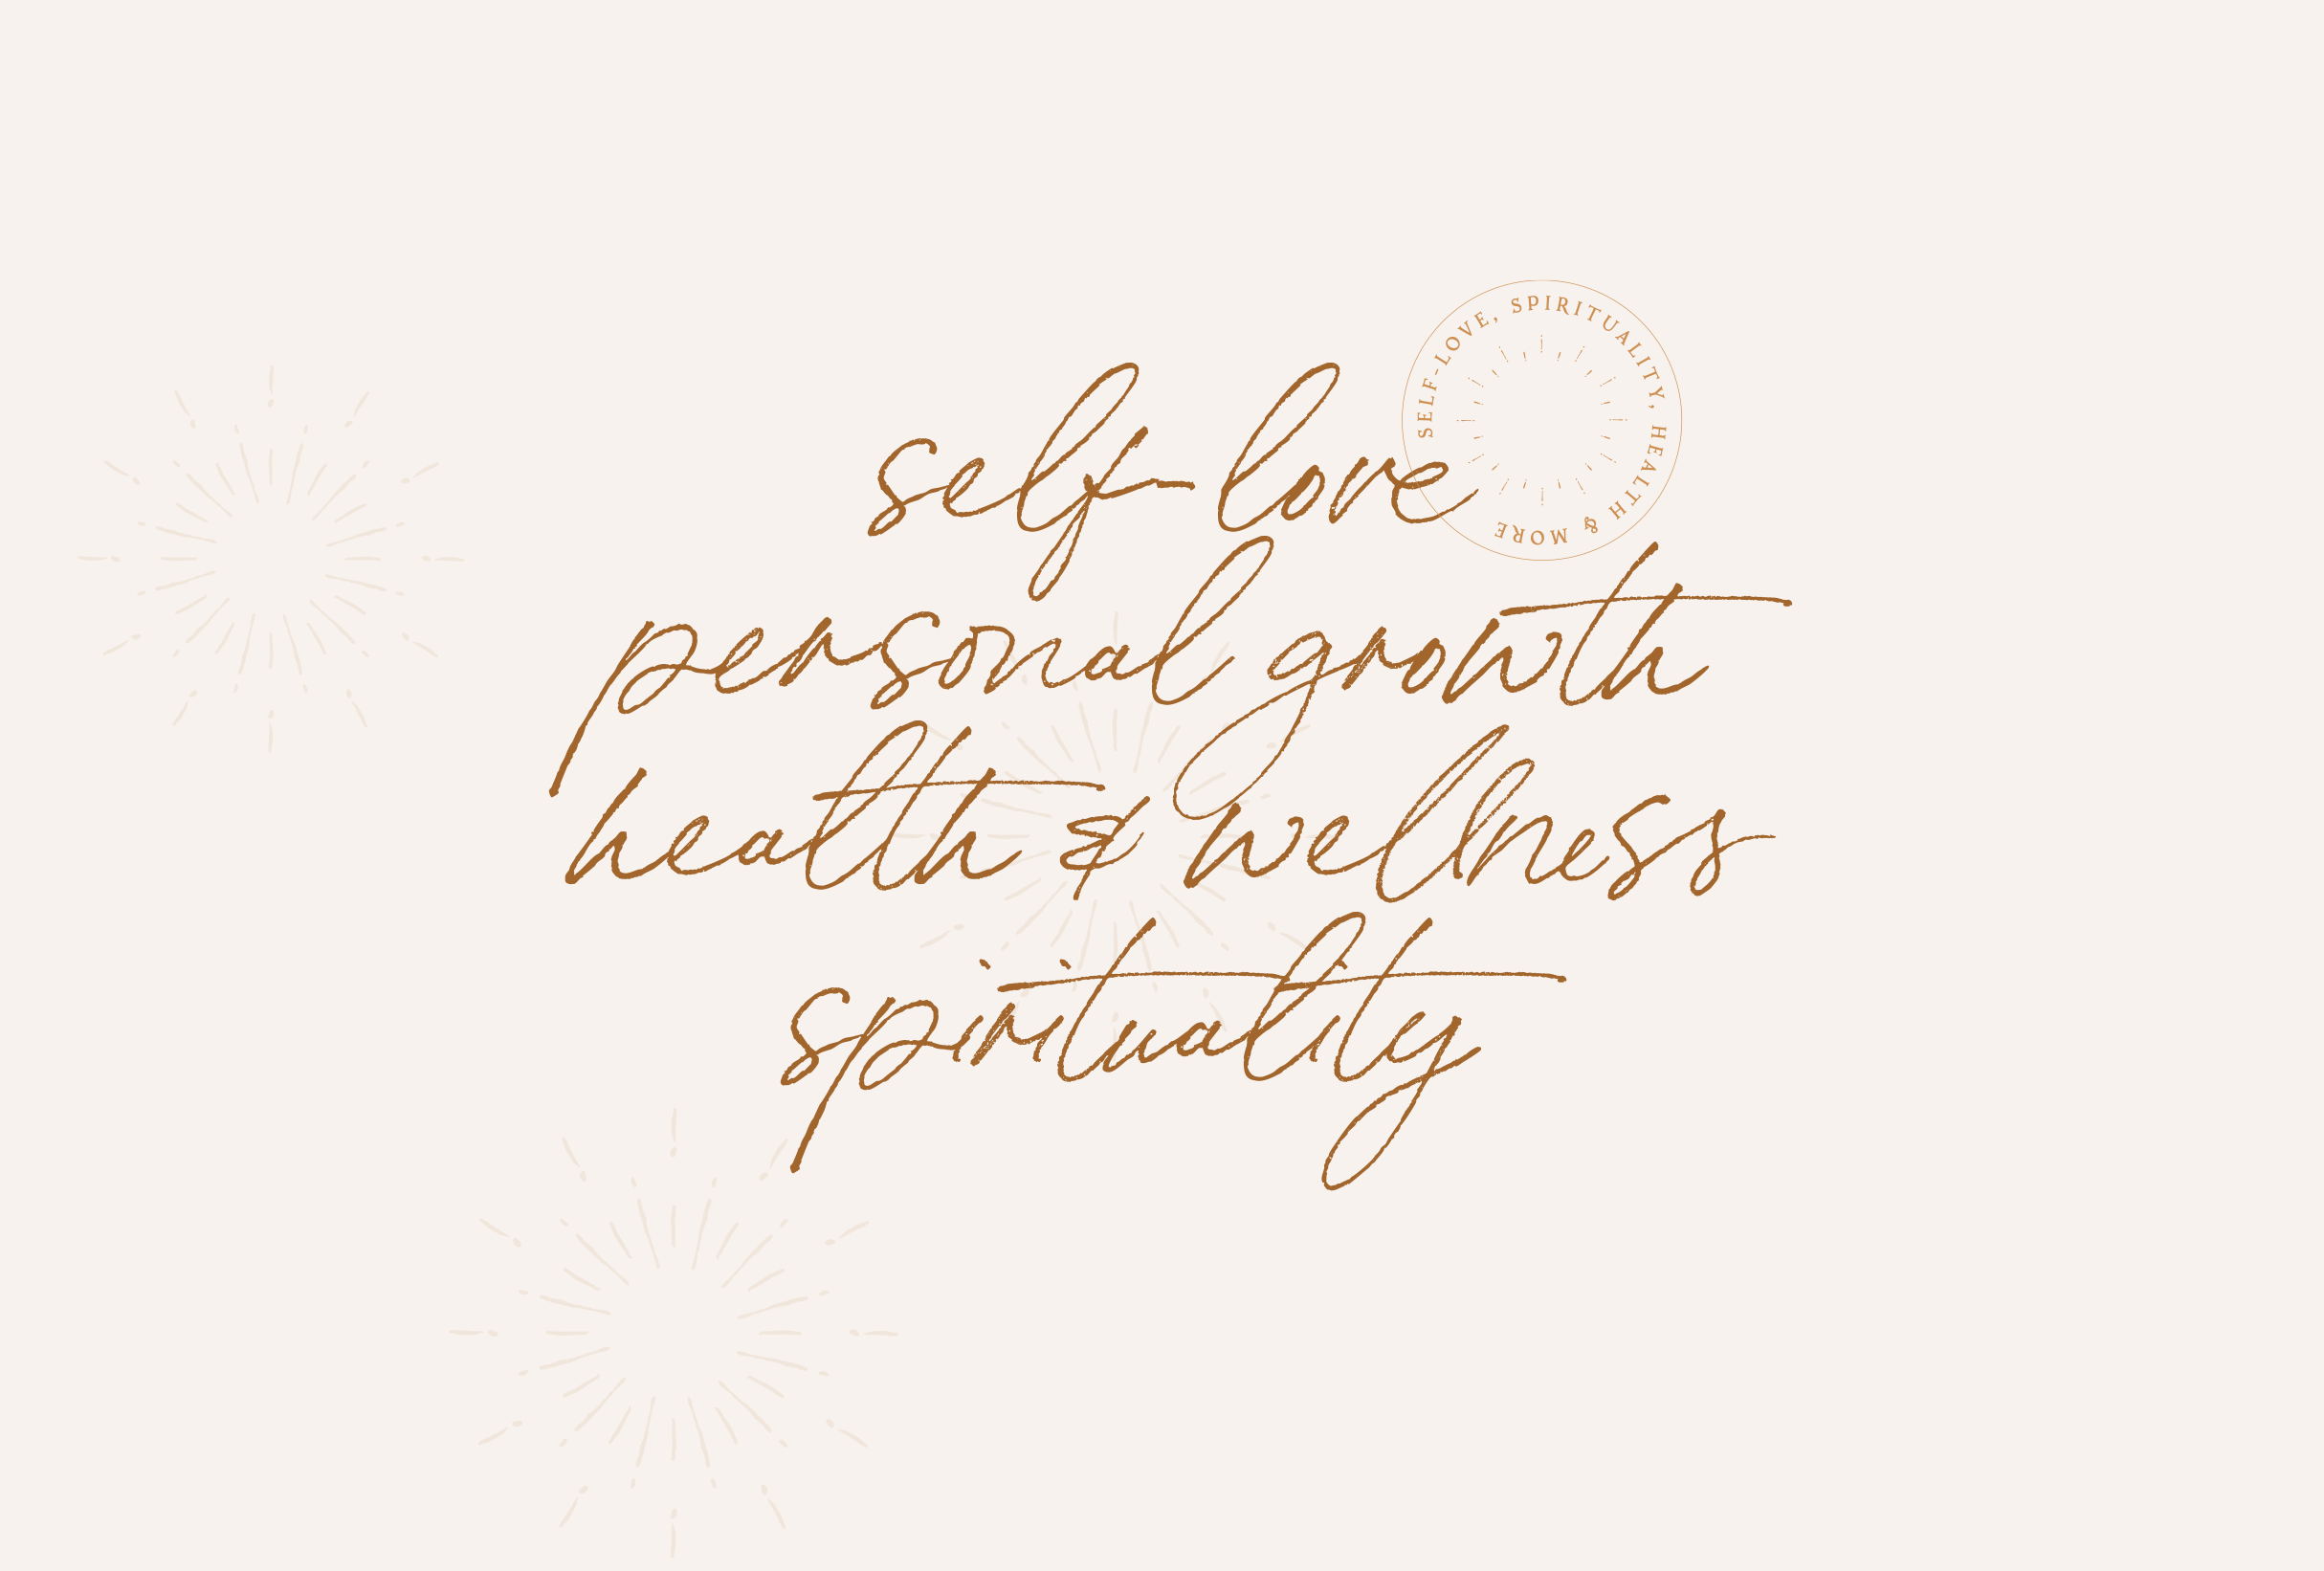 Subjects graphic for The Tiny Somethings, a lifestyle blog that shares little snippets of advice and experiences on different areas of life including personal growth, self-love, spirituality, health & wellness, and more - designed by Wiltshire-based graphic designer, Kaye Huett